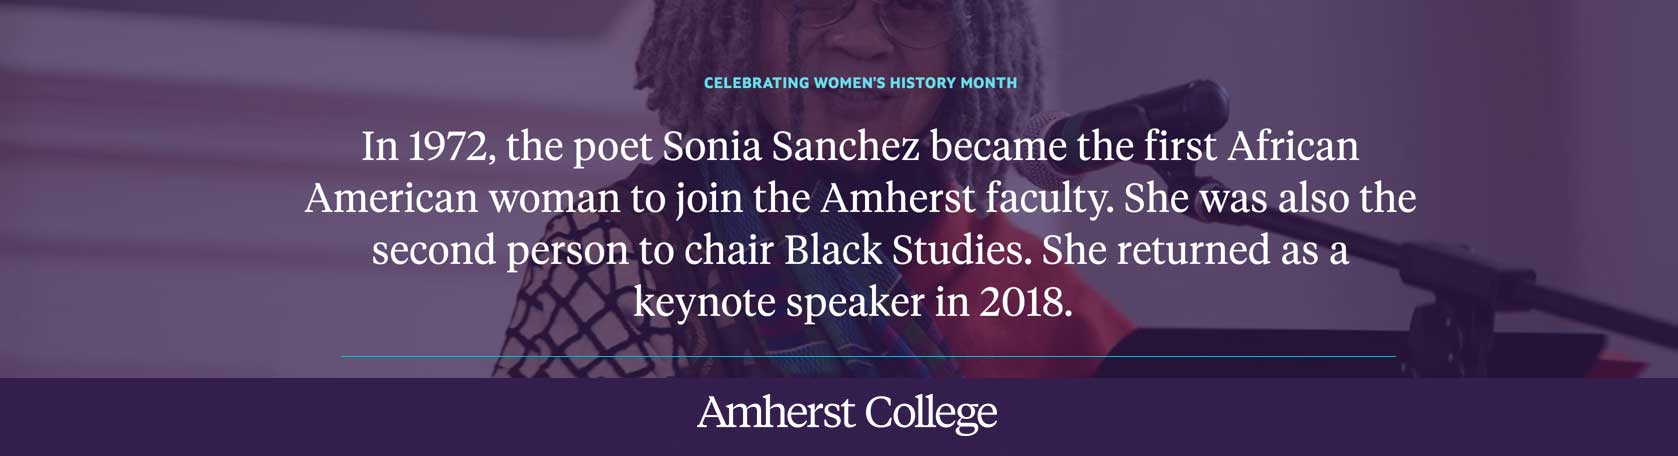 In 1972, Sonia Sanchez became the first African American woman to join the Amherst faculty